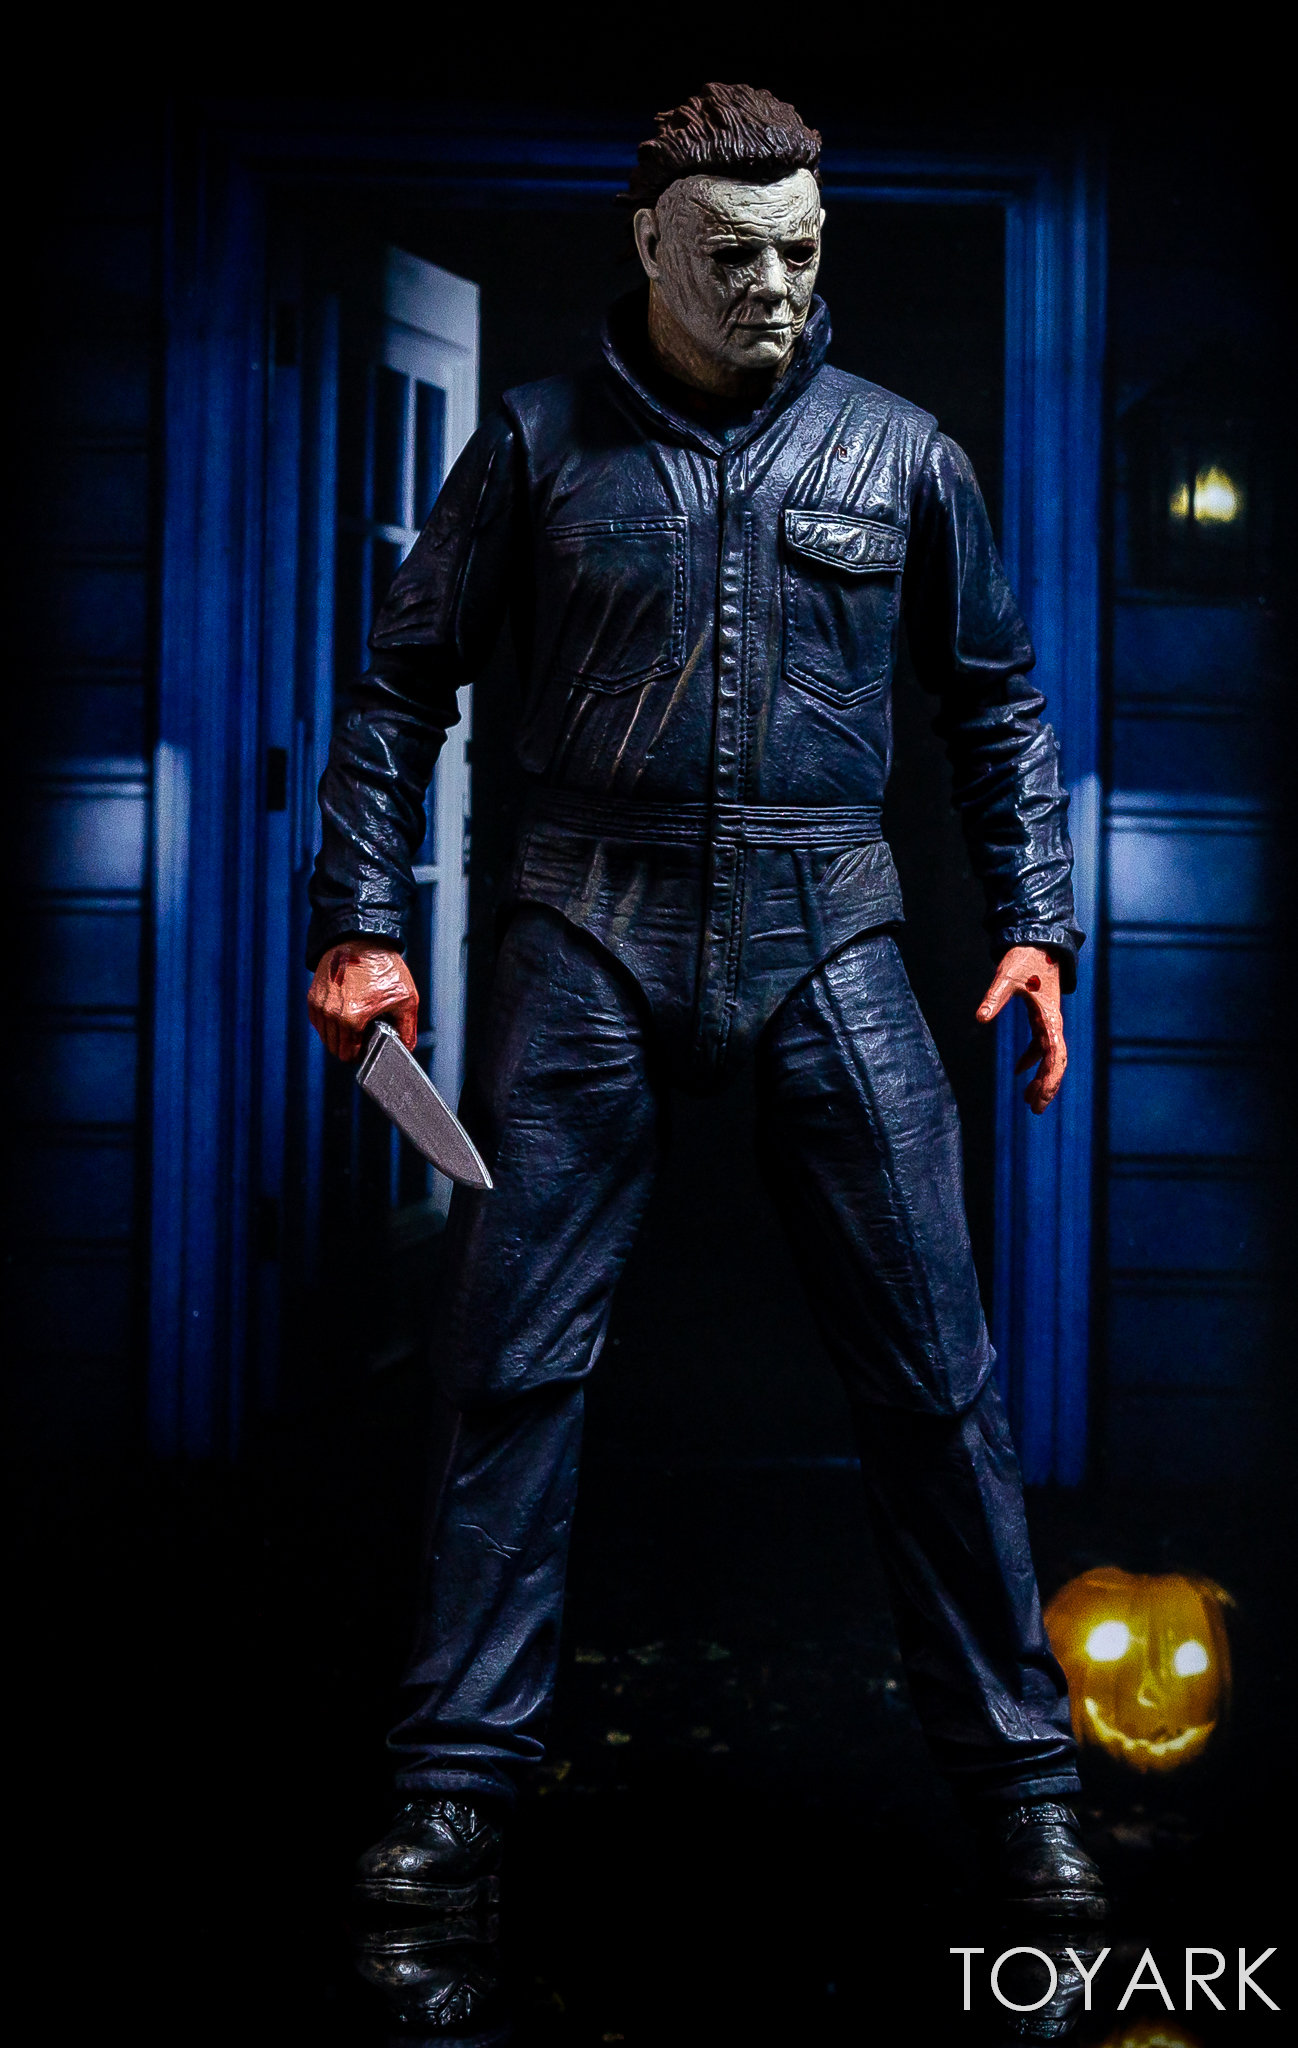 https://news.toyark.com/wp-content/uploads/sites/4/2018/11/Halloween-2018-Michael-Myers-Figure-069.jpg